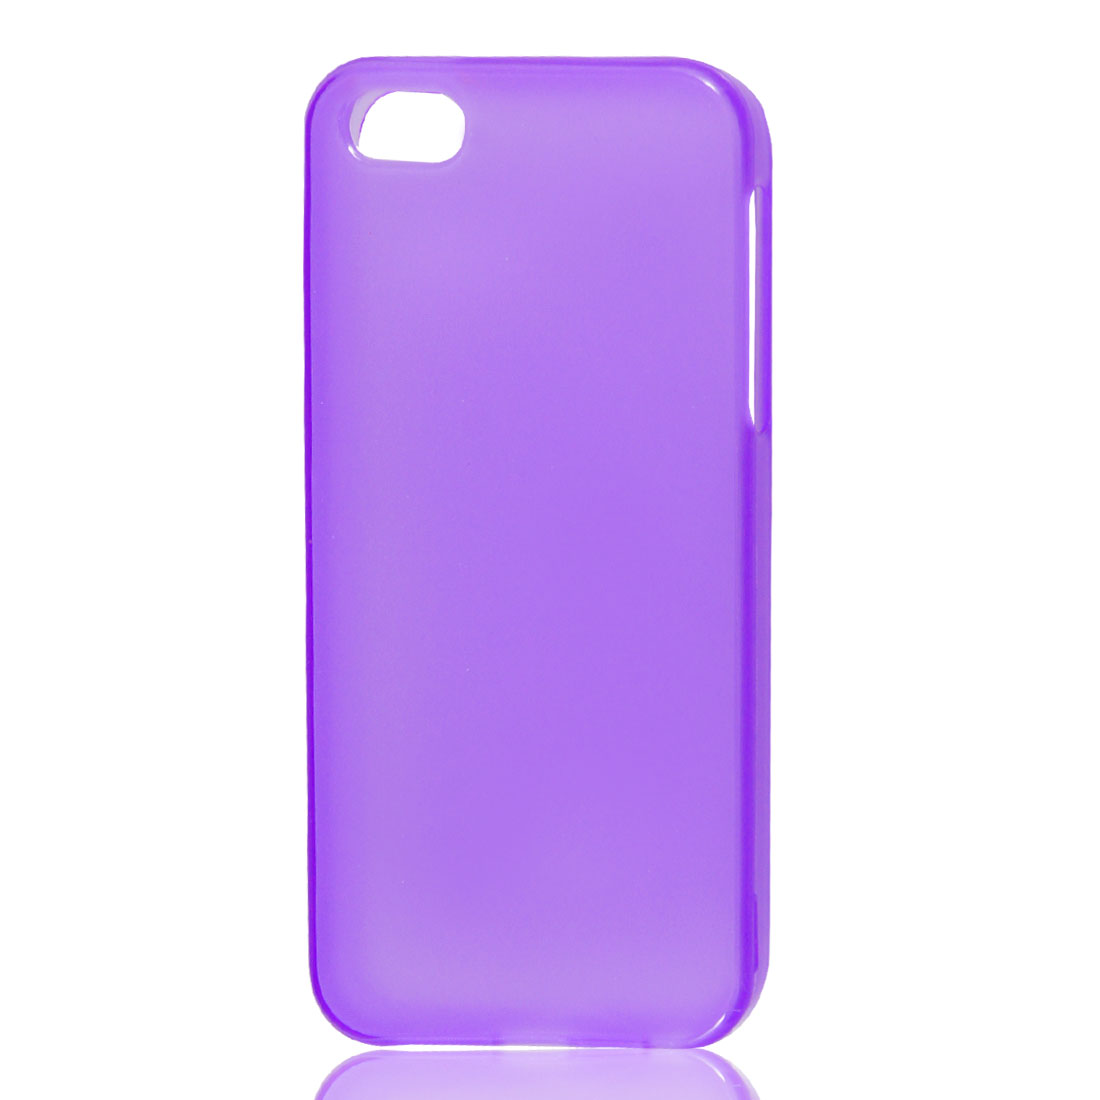 TPU Soft Plastic Case Cover Clear Purple for iPhone 5 5G 5th Gen